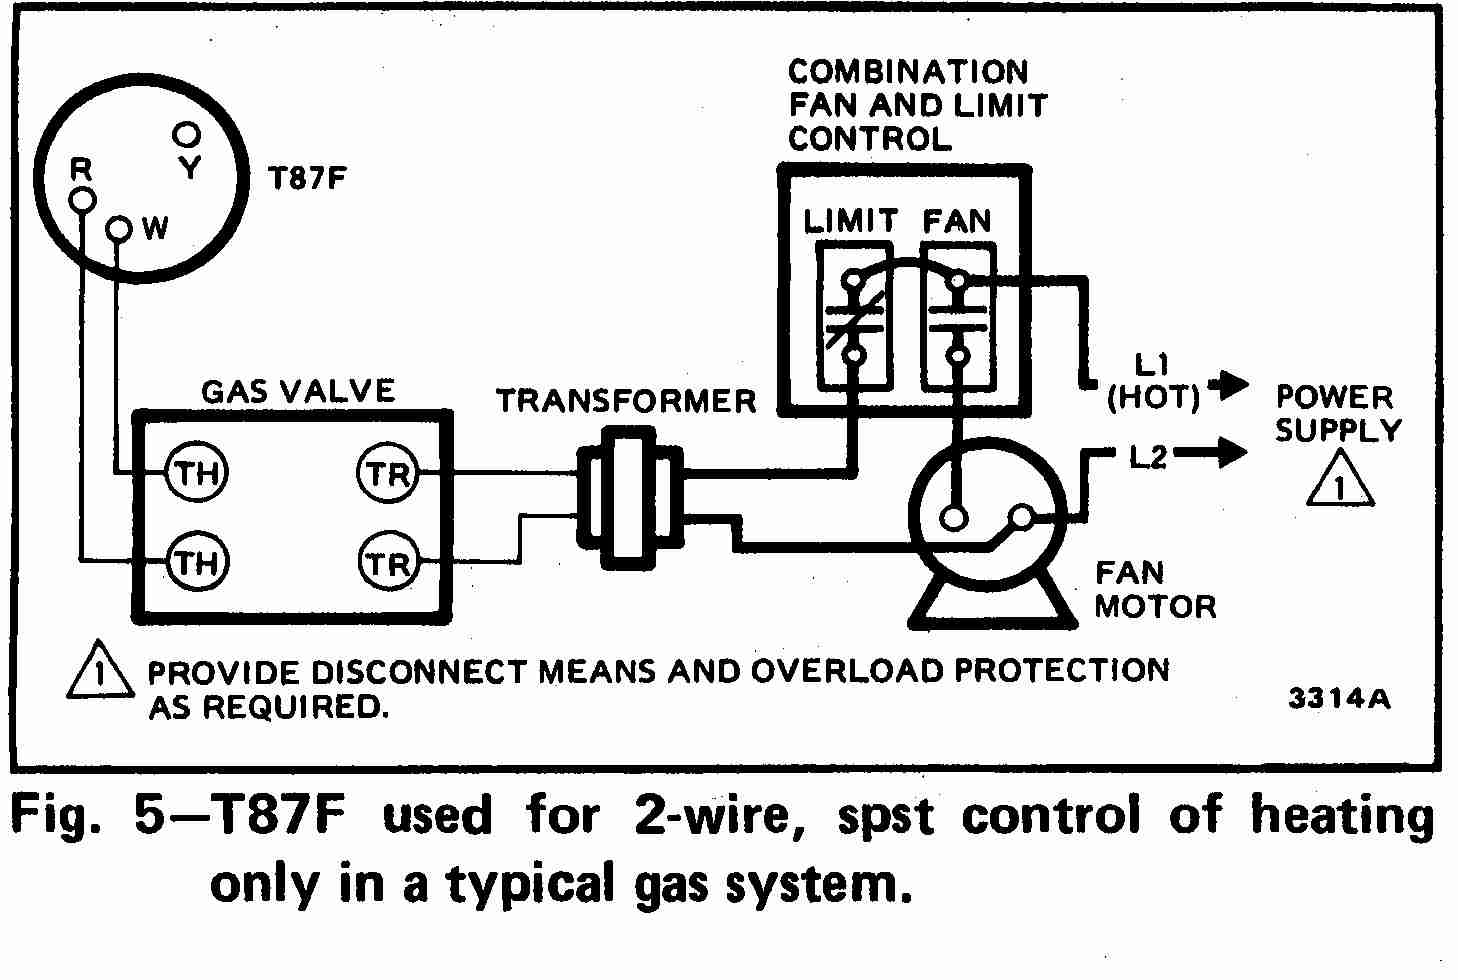 TT_T87F_0002_2Wg_DJF room thermostat wiring diagrams for hvac systems imit boiler thermostat wiring diagram at bayanpartner.co